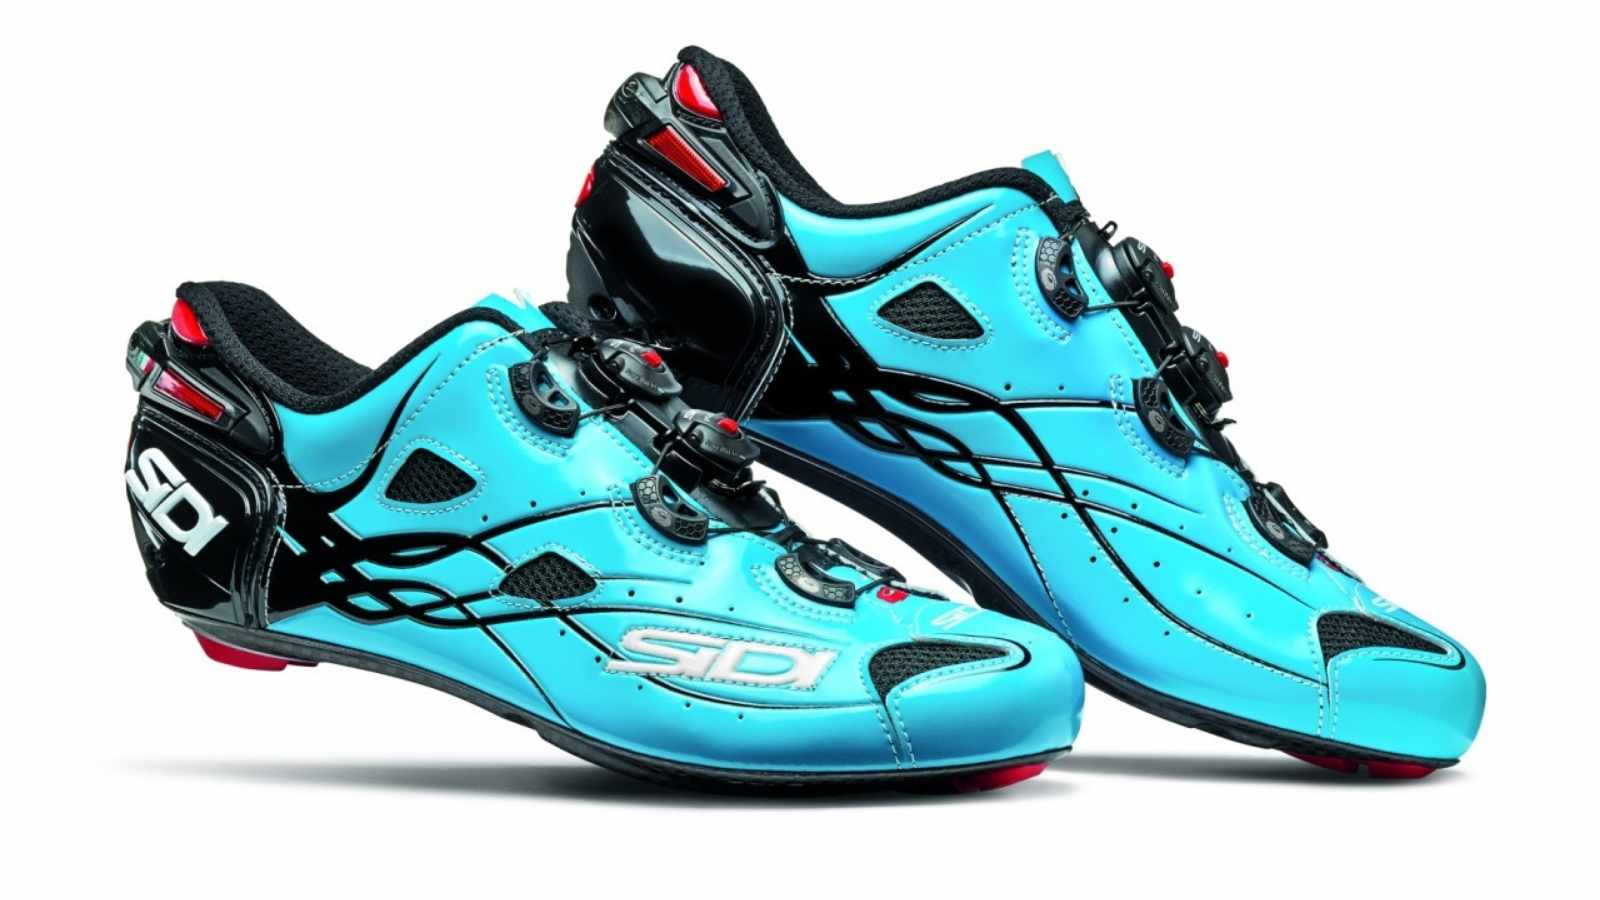 The Sidi Shot shoes have advanced heel adjustability and are currently £150 off retail at Merlin Cycles